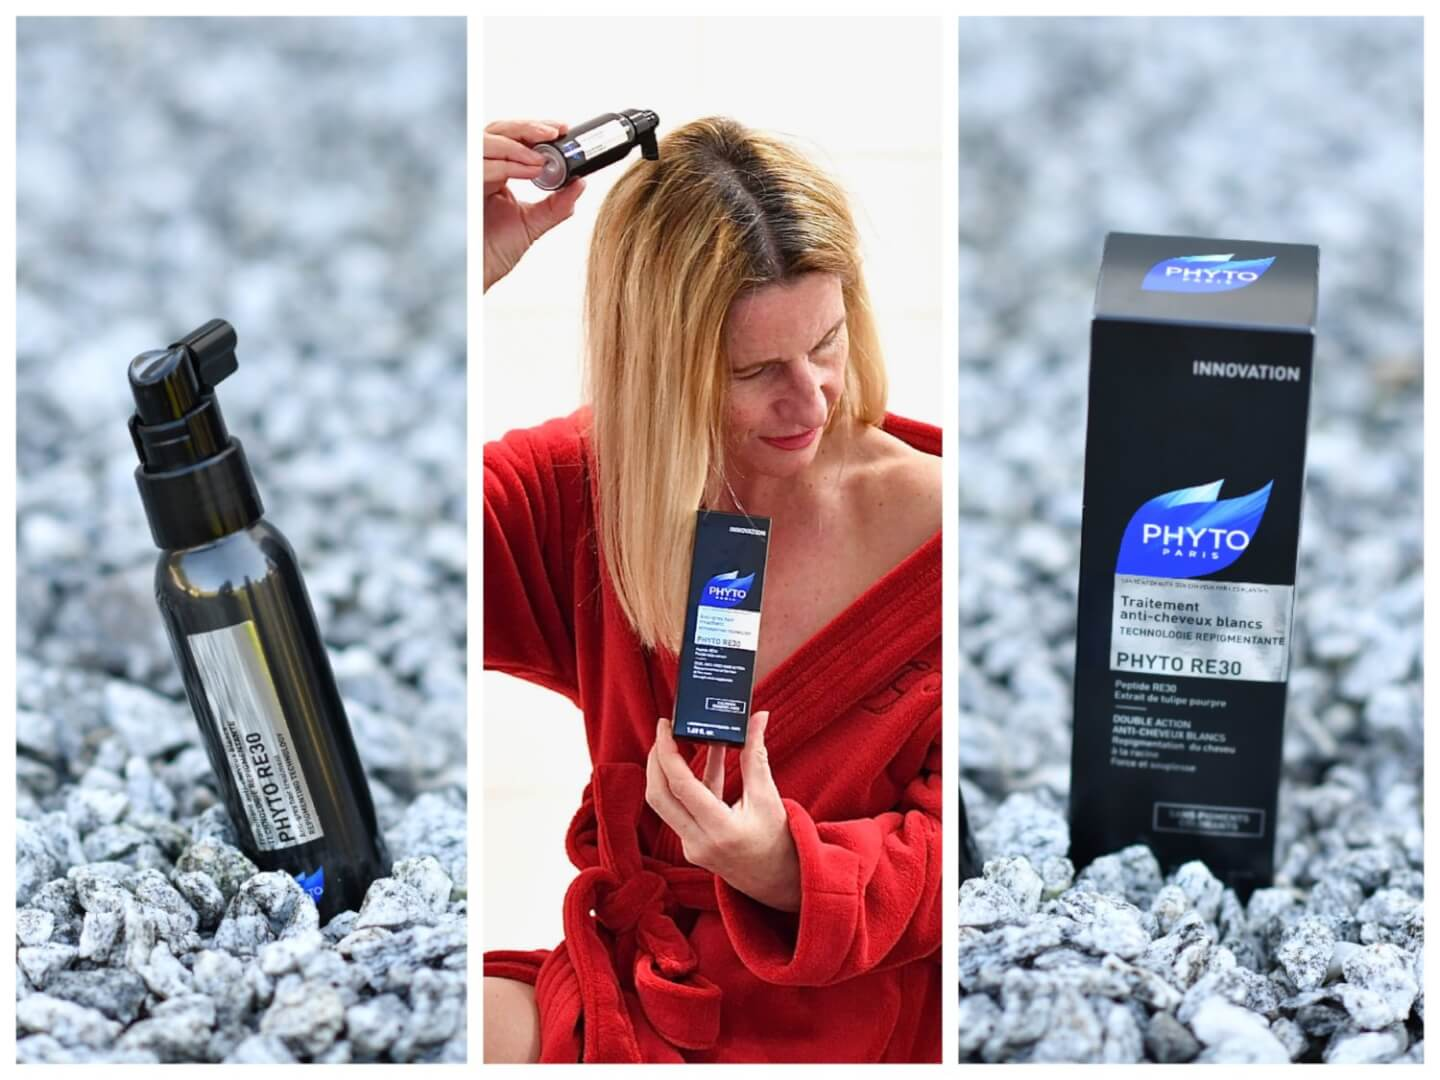 Grey Hair No More - Grey Hair Pigmentation thanks to Phyto RE30